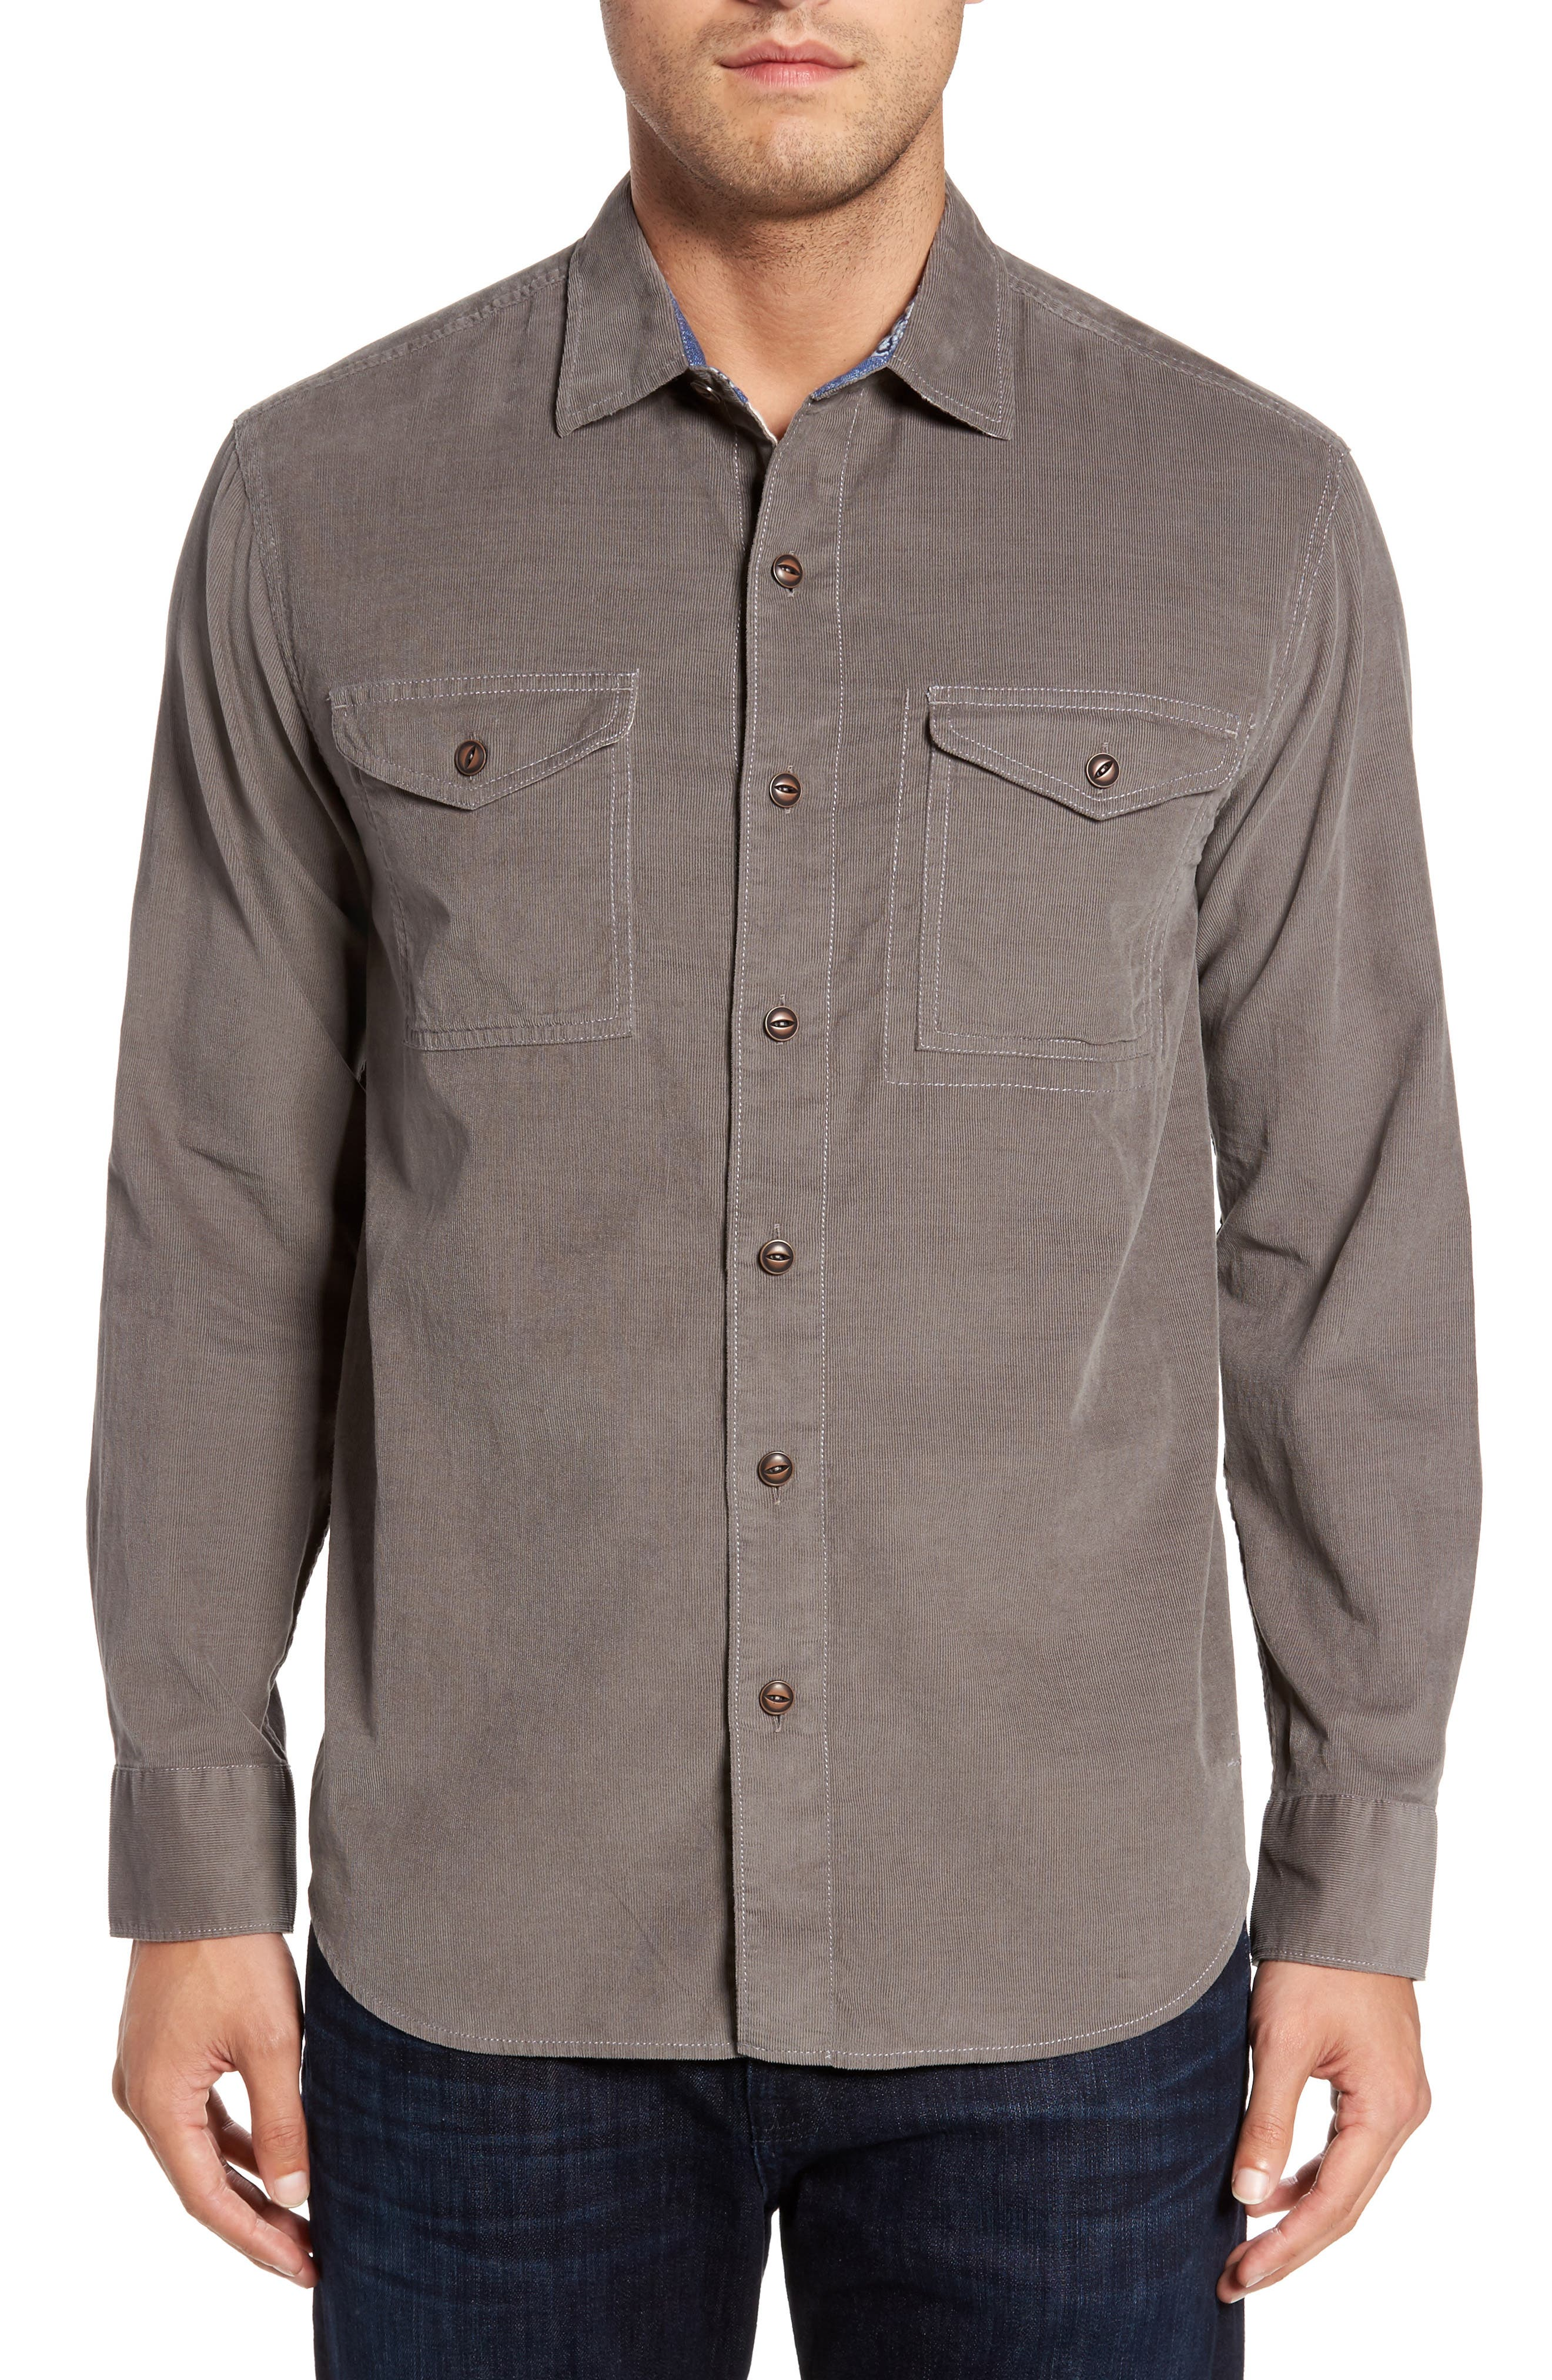 Harrison Cord Standard Fit Shirt,                         Main,                         color, 050